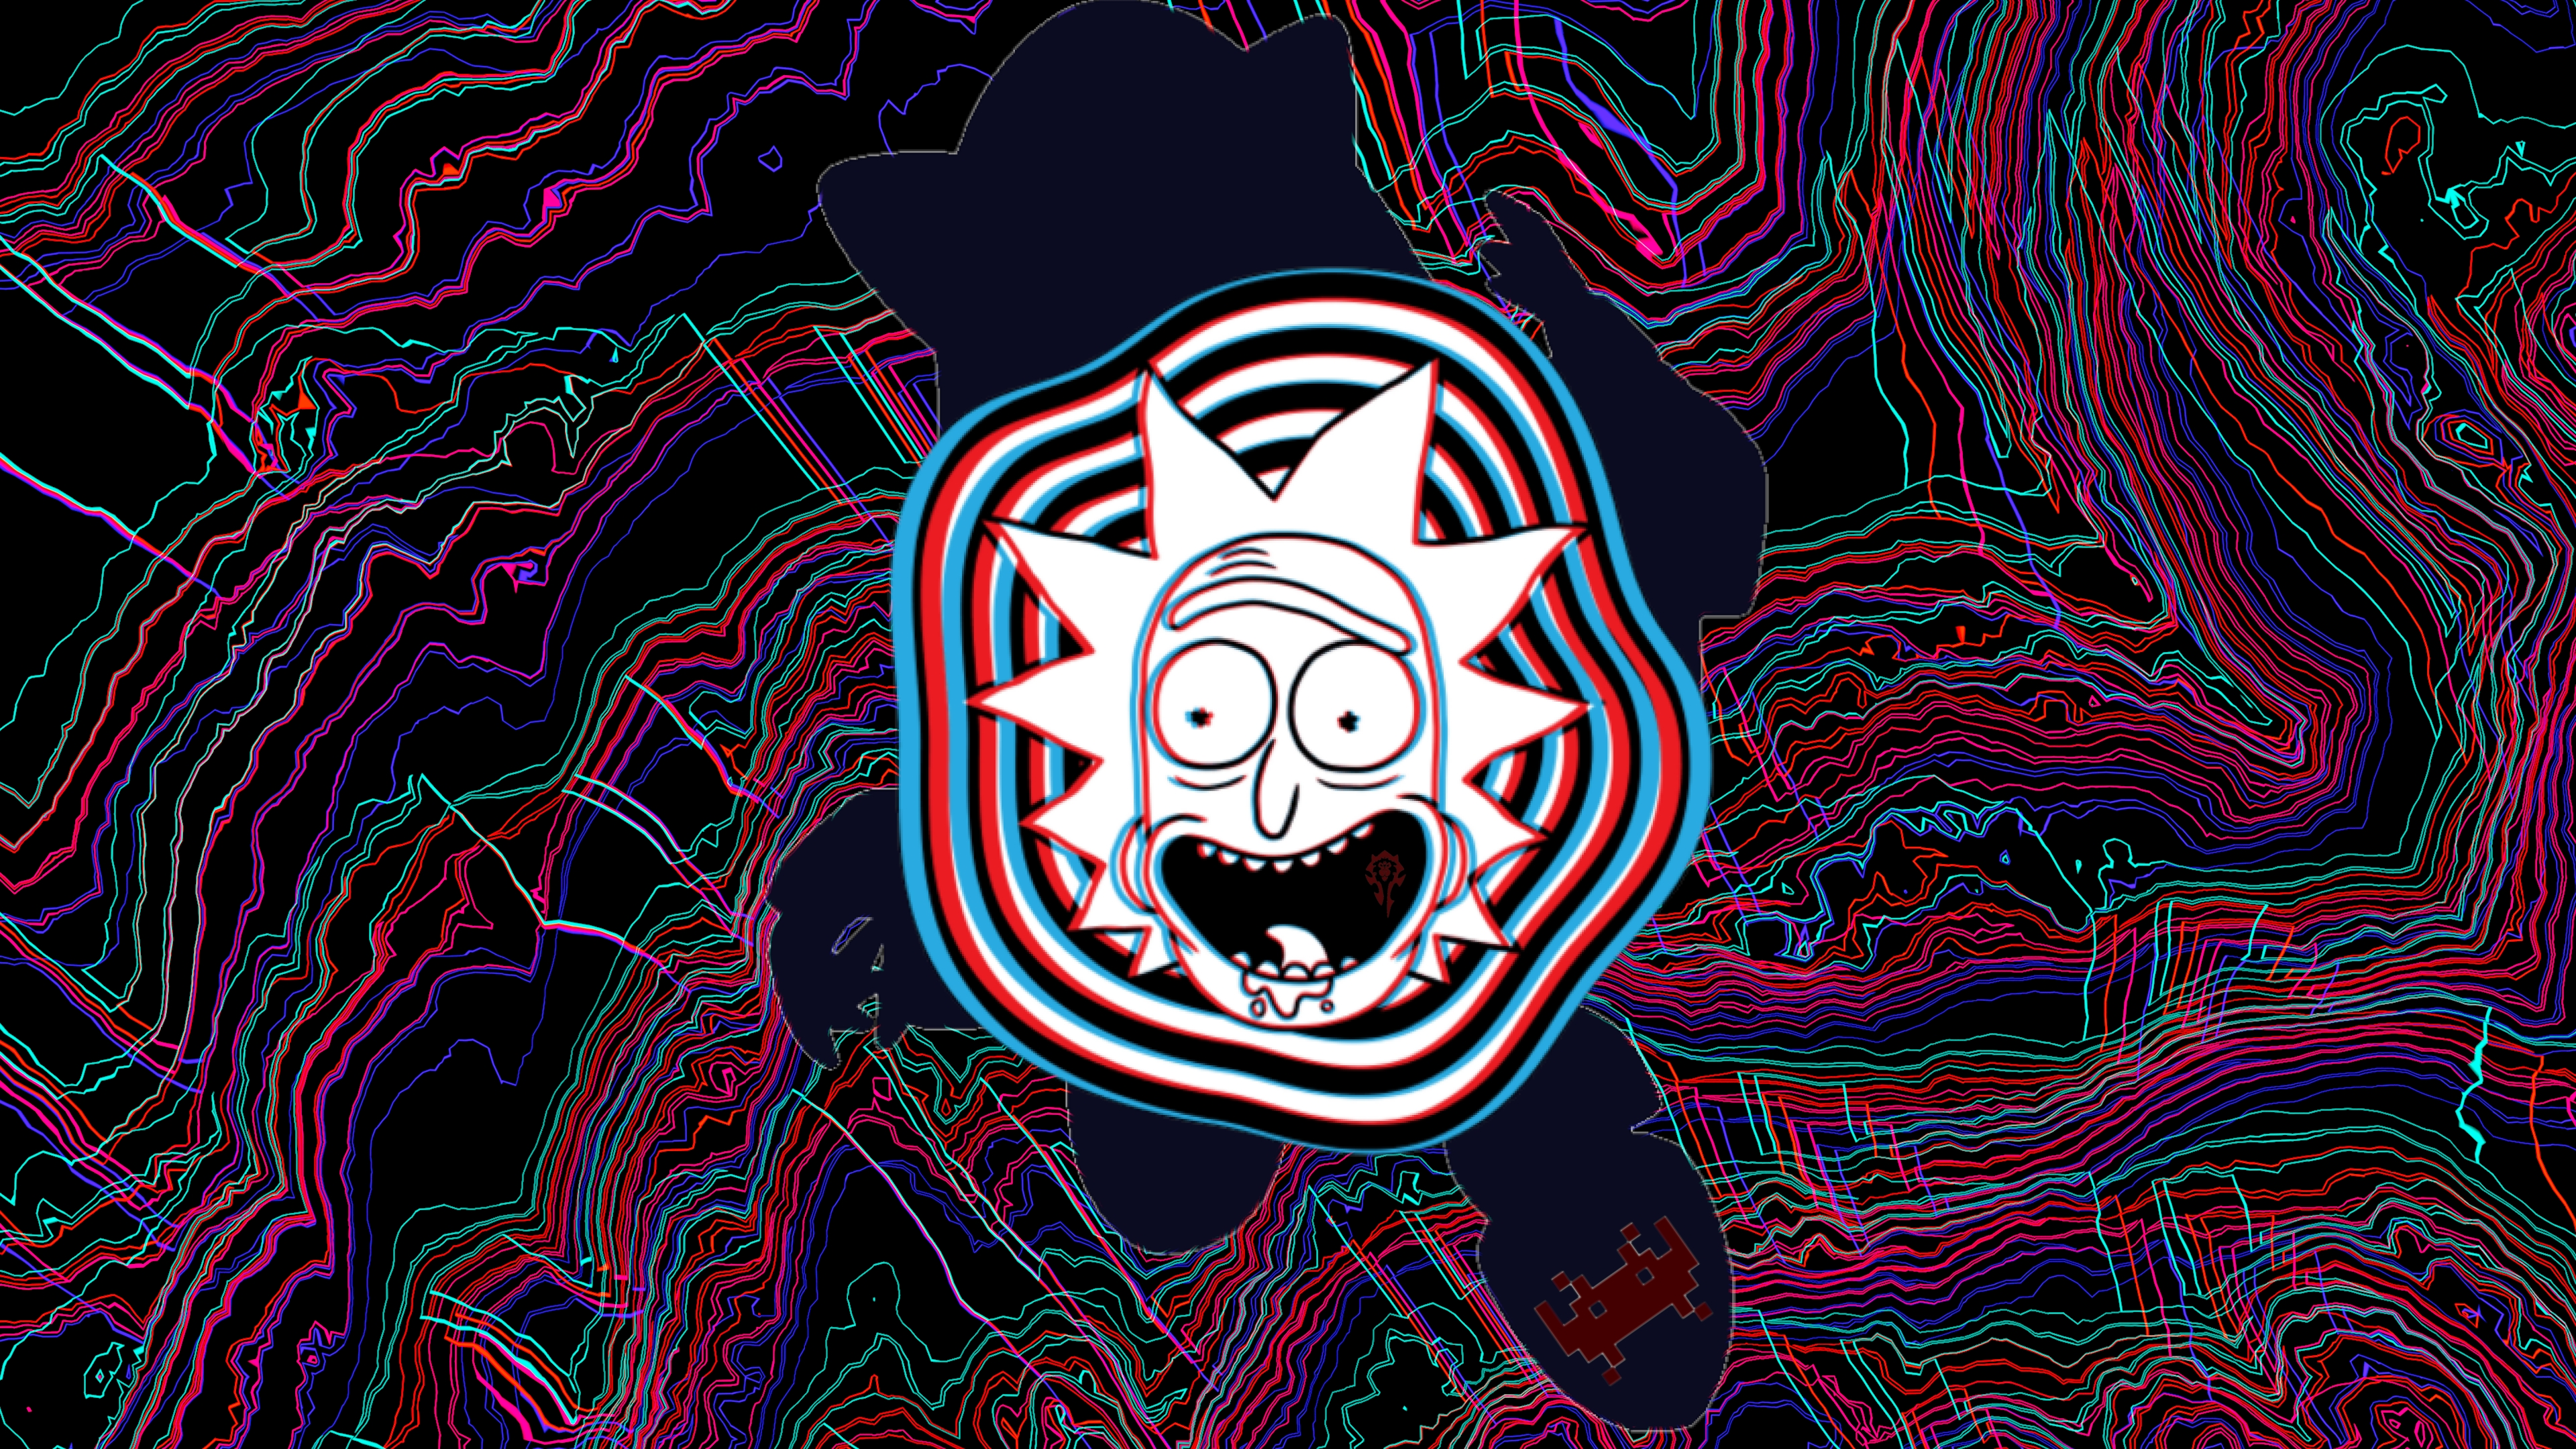 Wallpaper Rick Sanchez Glitch from Rick y Morty